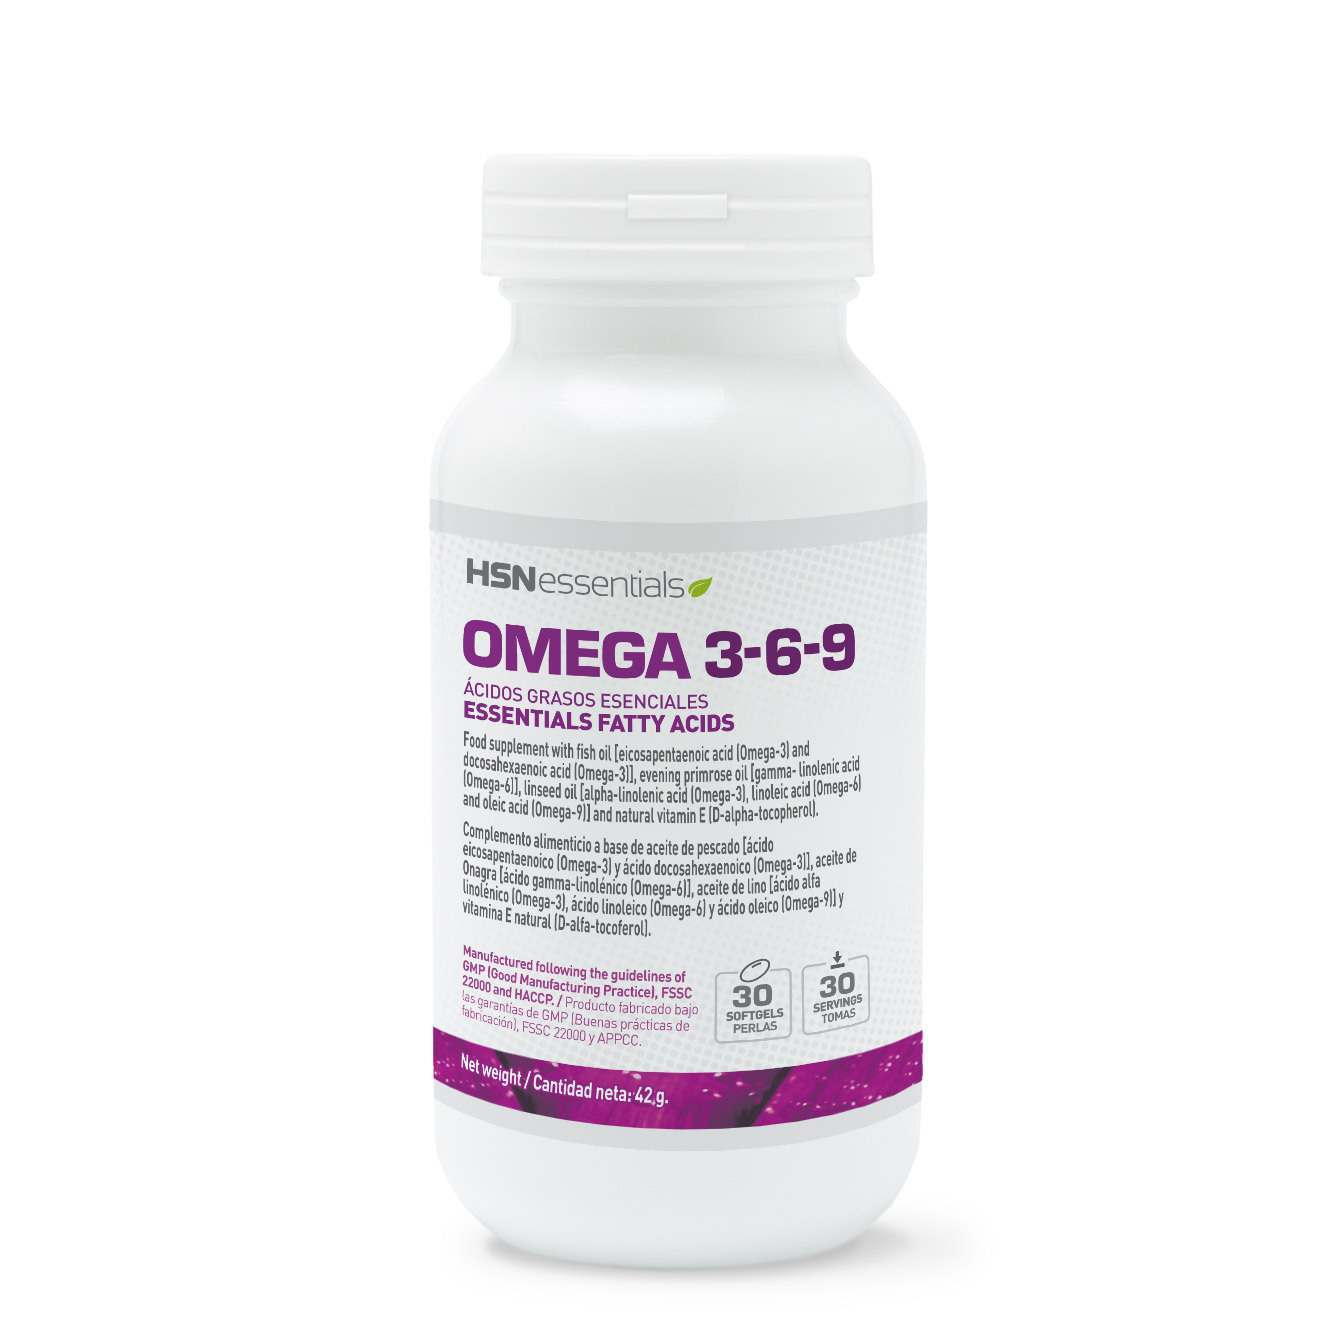 OMEGA 3-6-9 - 30 softgels